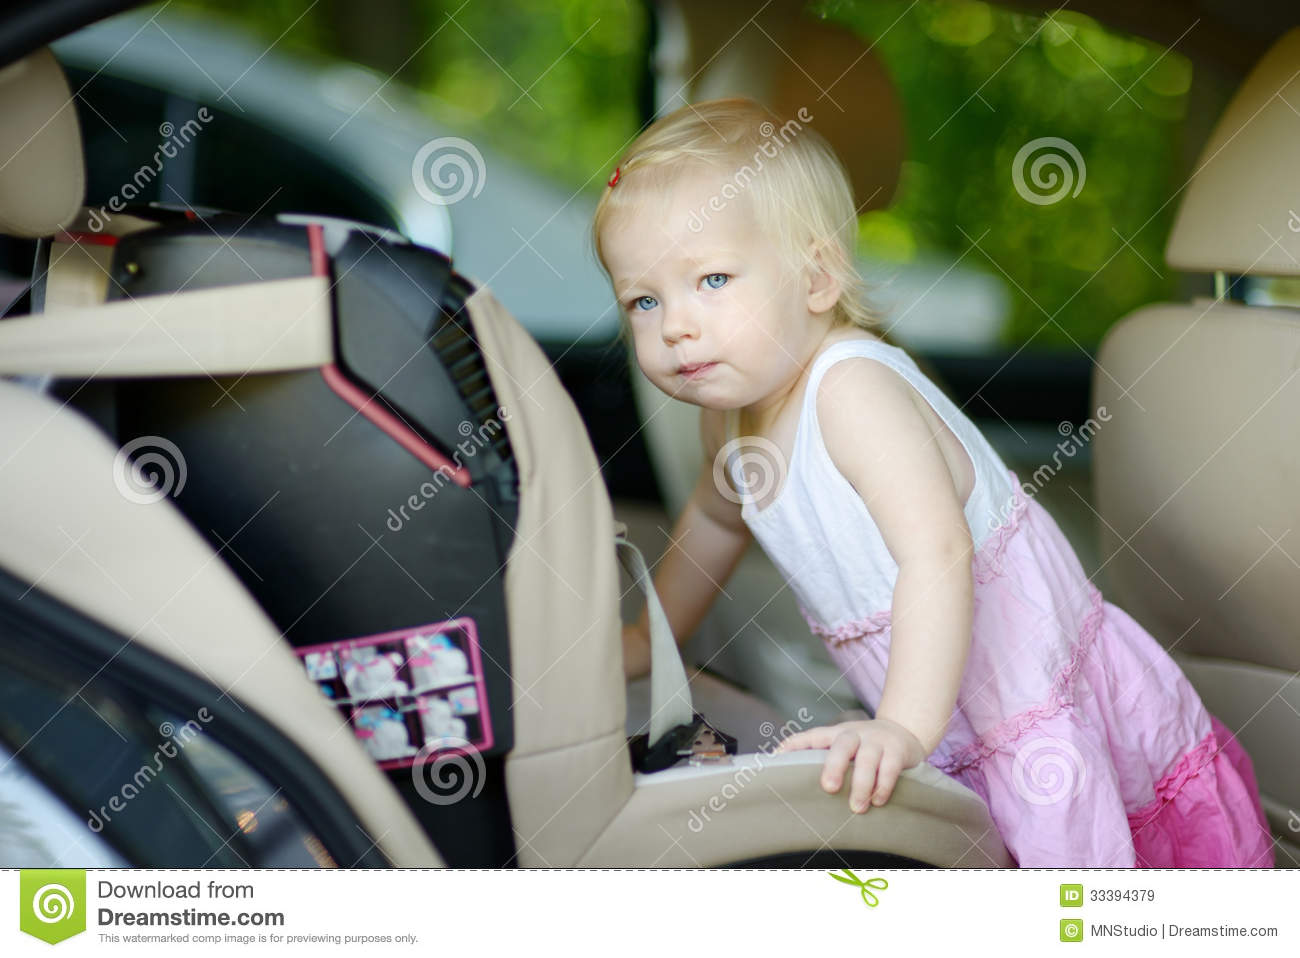 toddler girl getting into a car seat royalty free stock images image 33394379. Black Bedroom Furniture Sets. Home Design Ideas